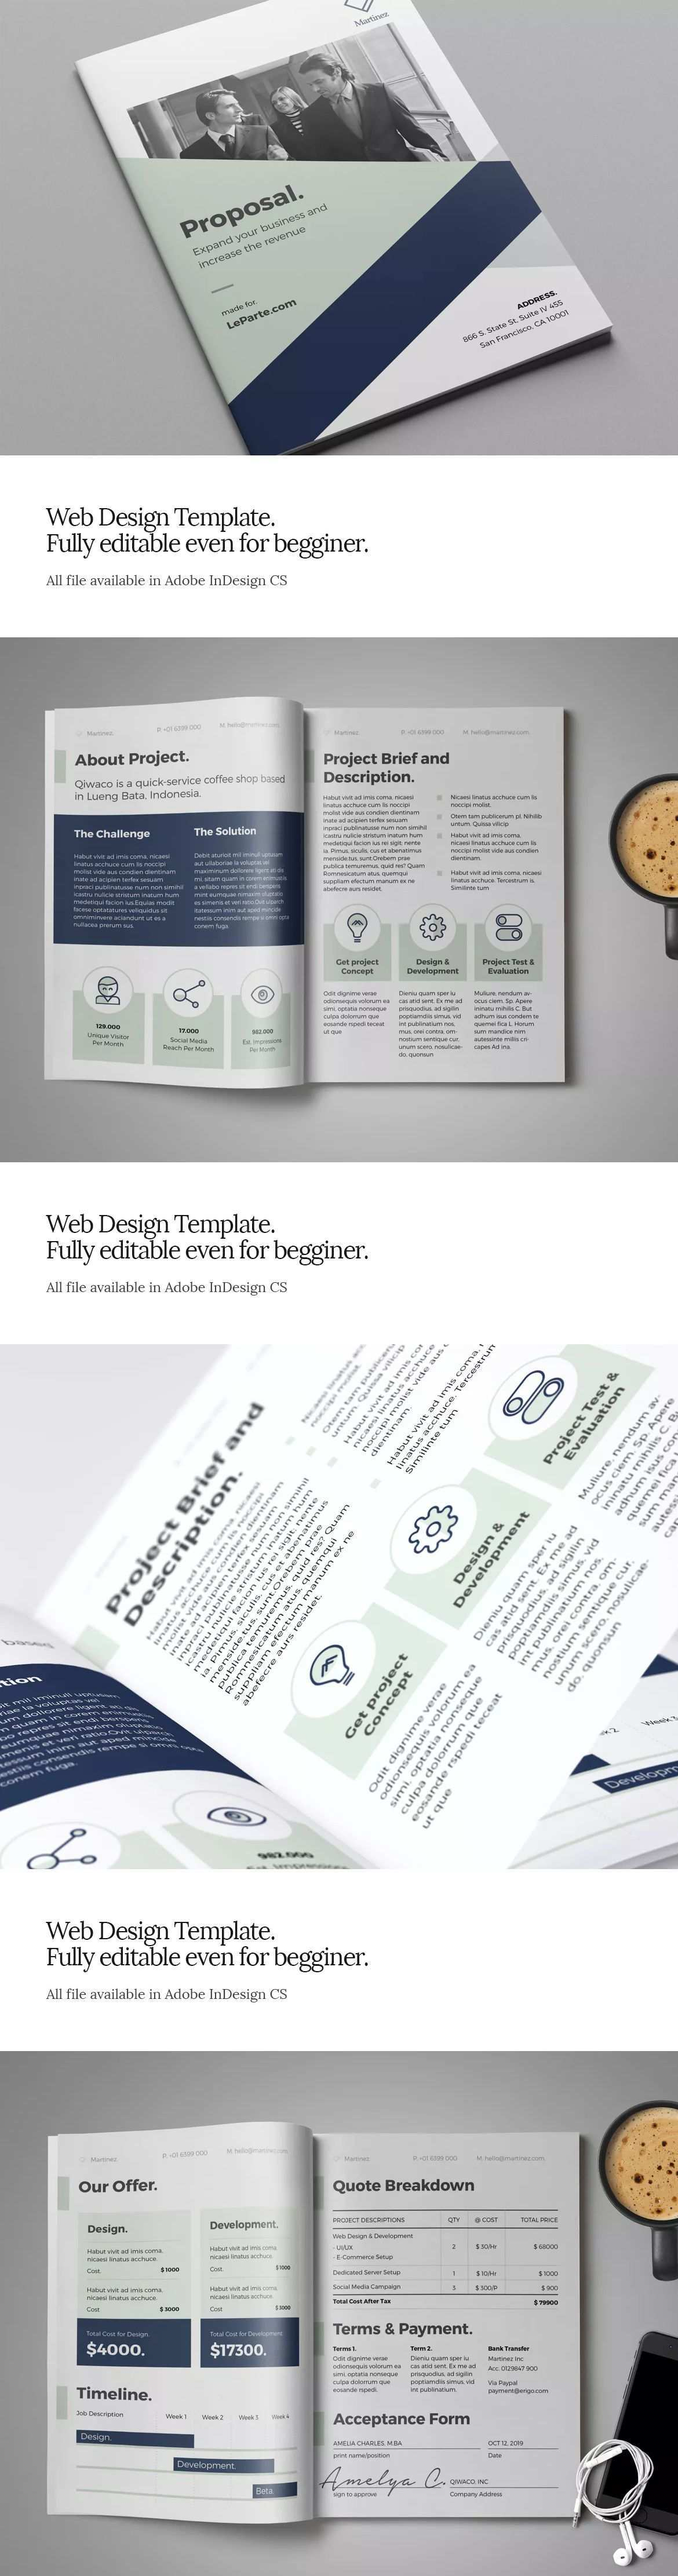 Brief Proposal By Broluthfi On Envato Elements Proposal Templates Web Template Design Proposal Design